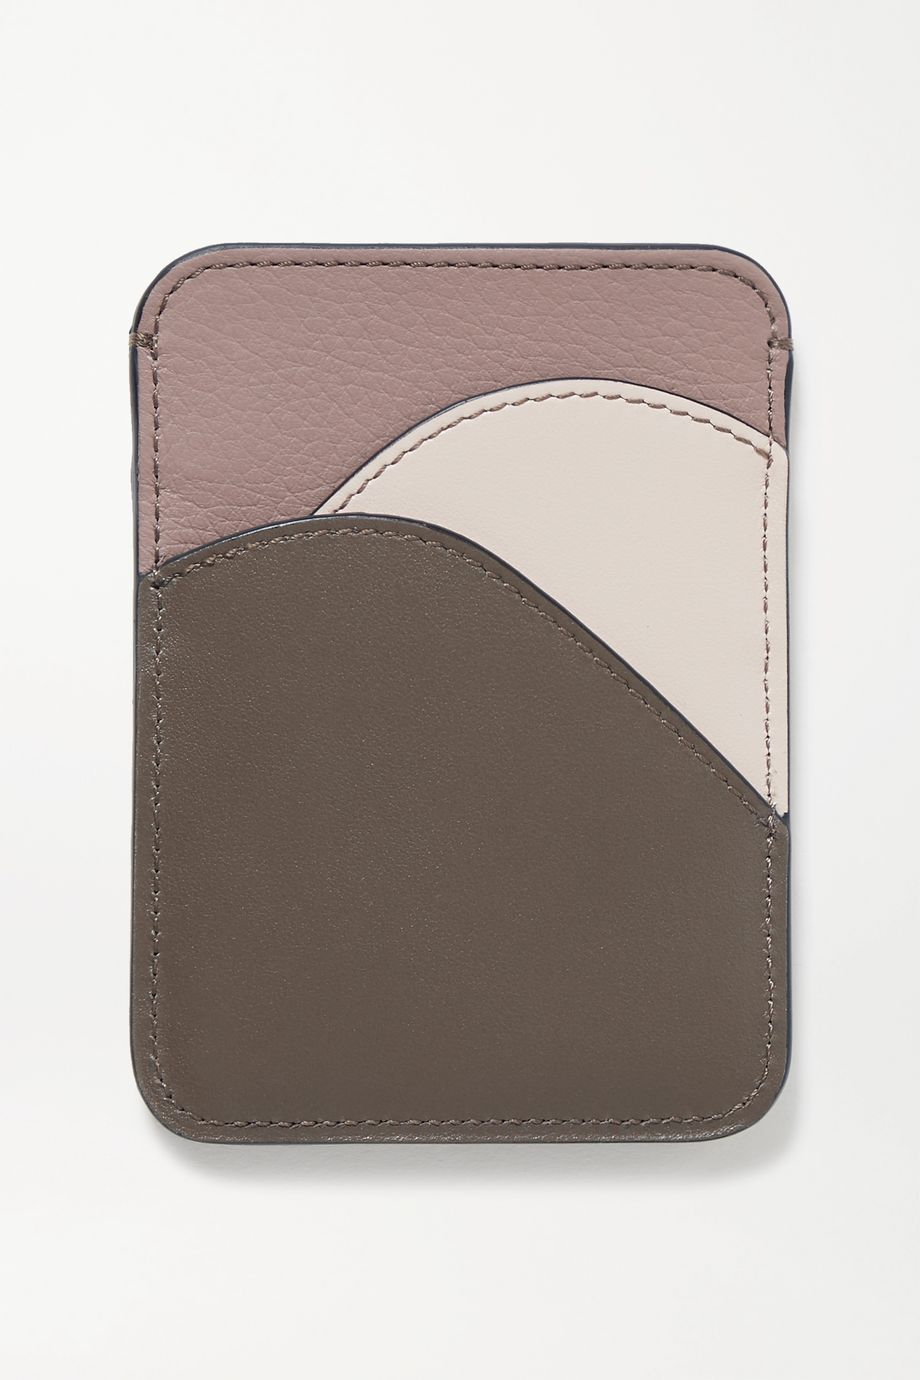 Chloé Walden color-block leather cardholder